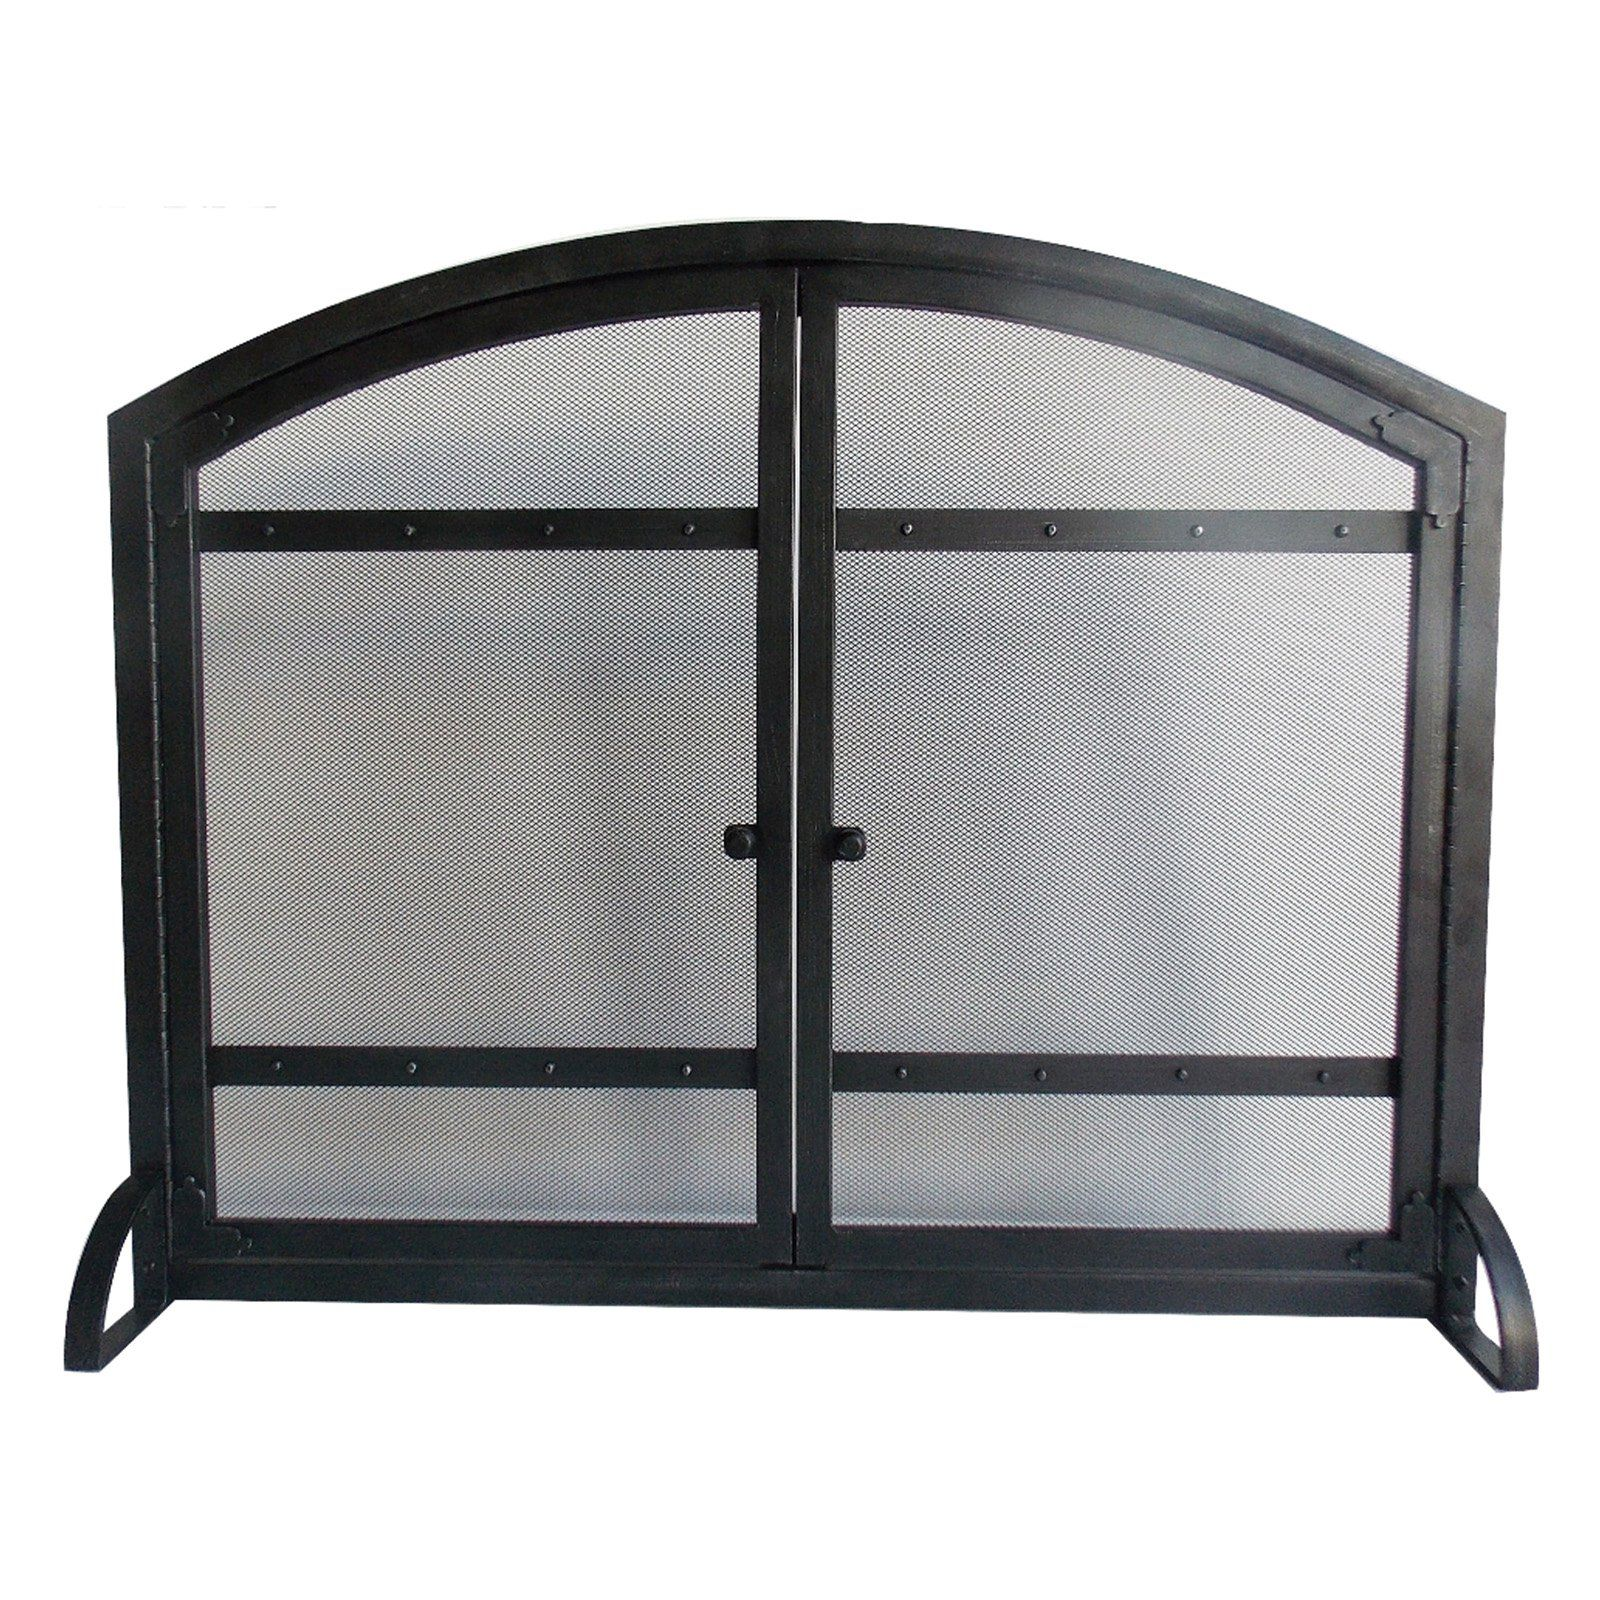 Pleasant Hearth Fa338s Harper 1 Panel Fireplace Screen With Doors Antique Black Finish Fireplace Screens With Doors Fireplace Screens Fireplace Accessories